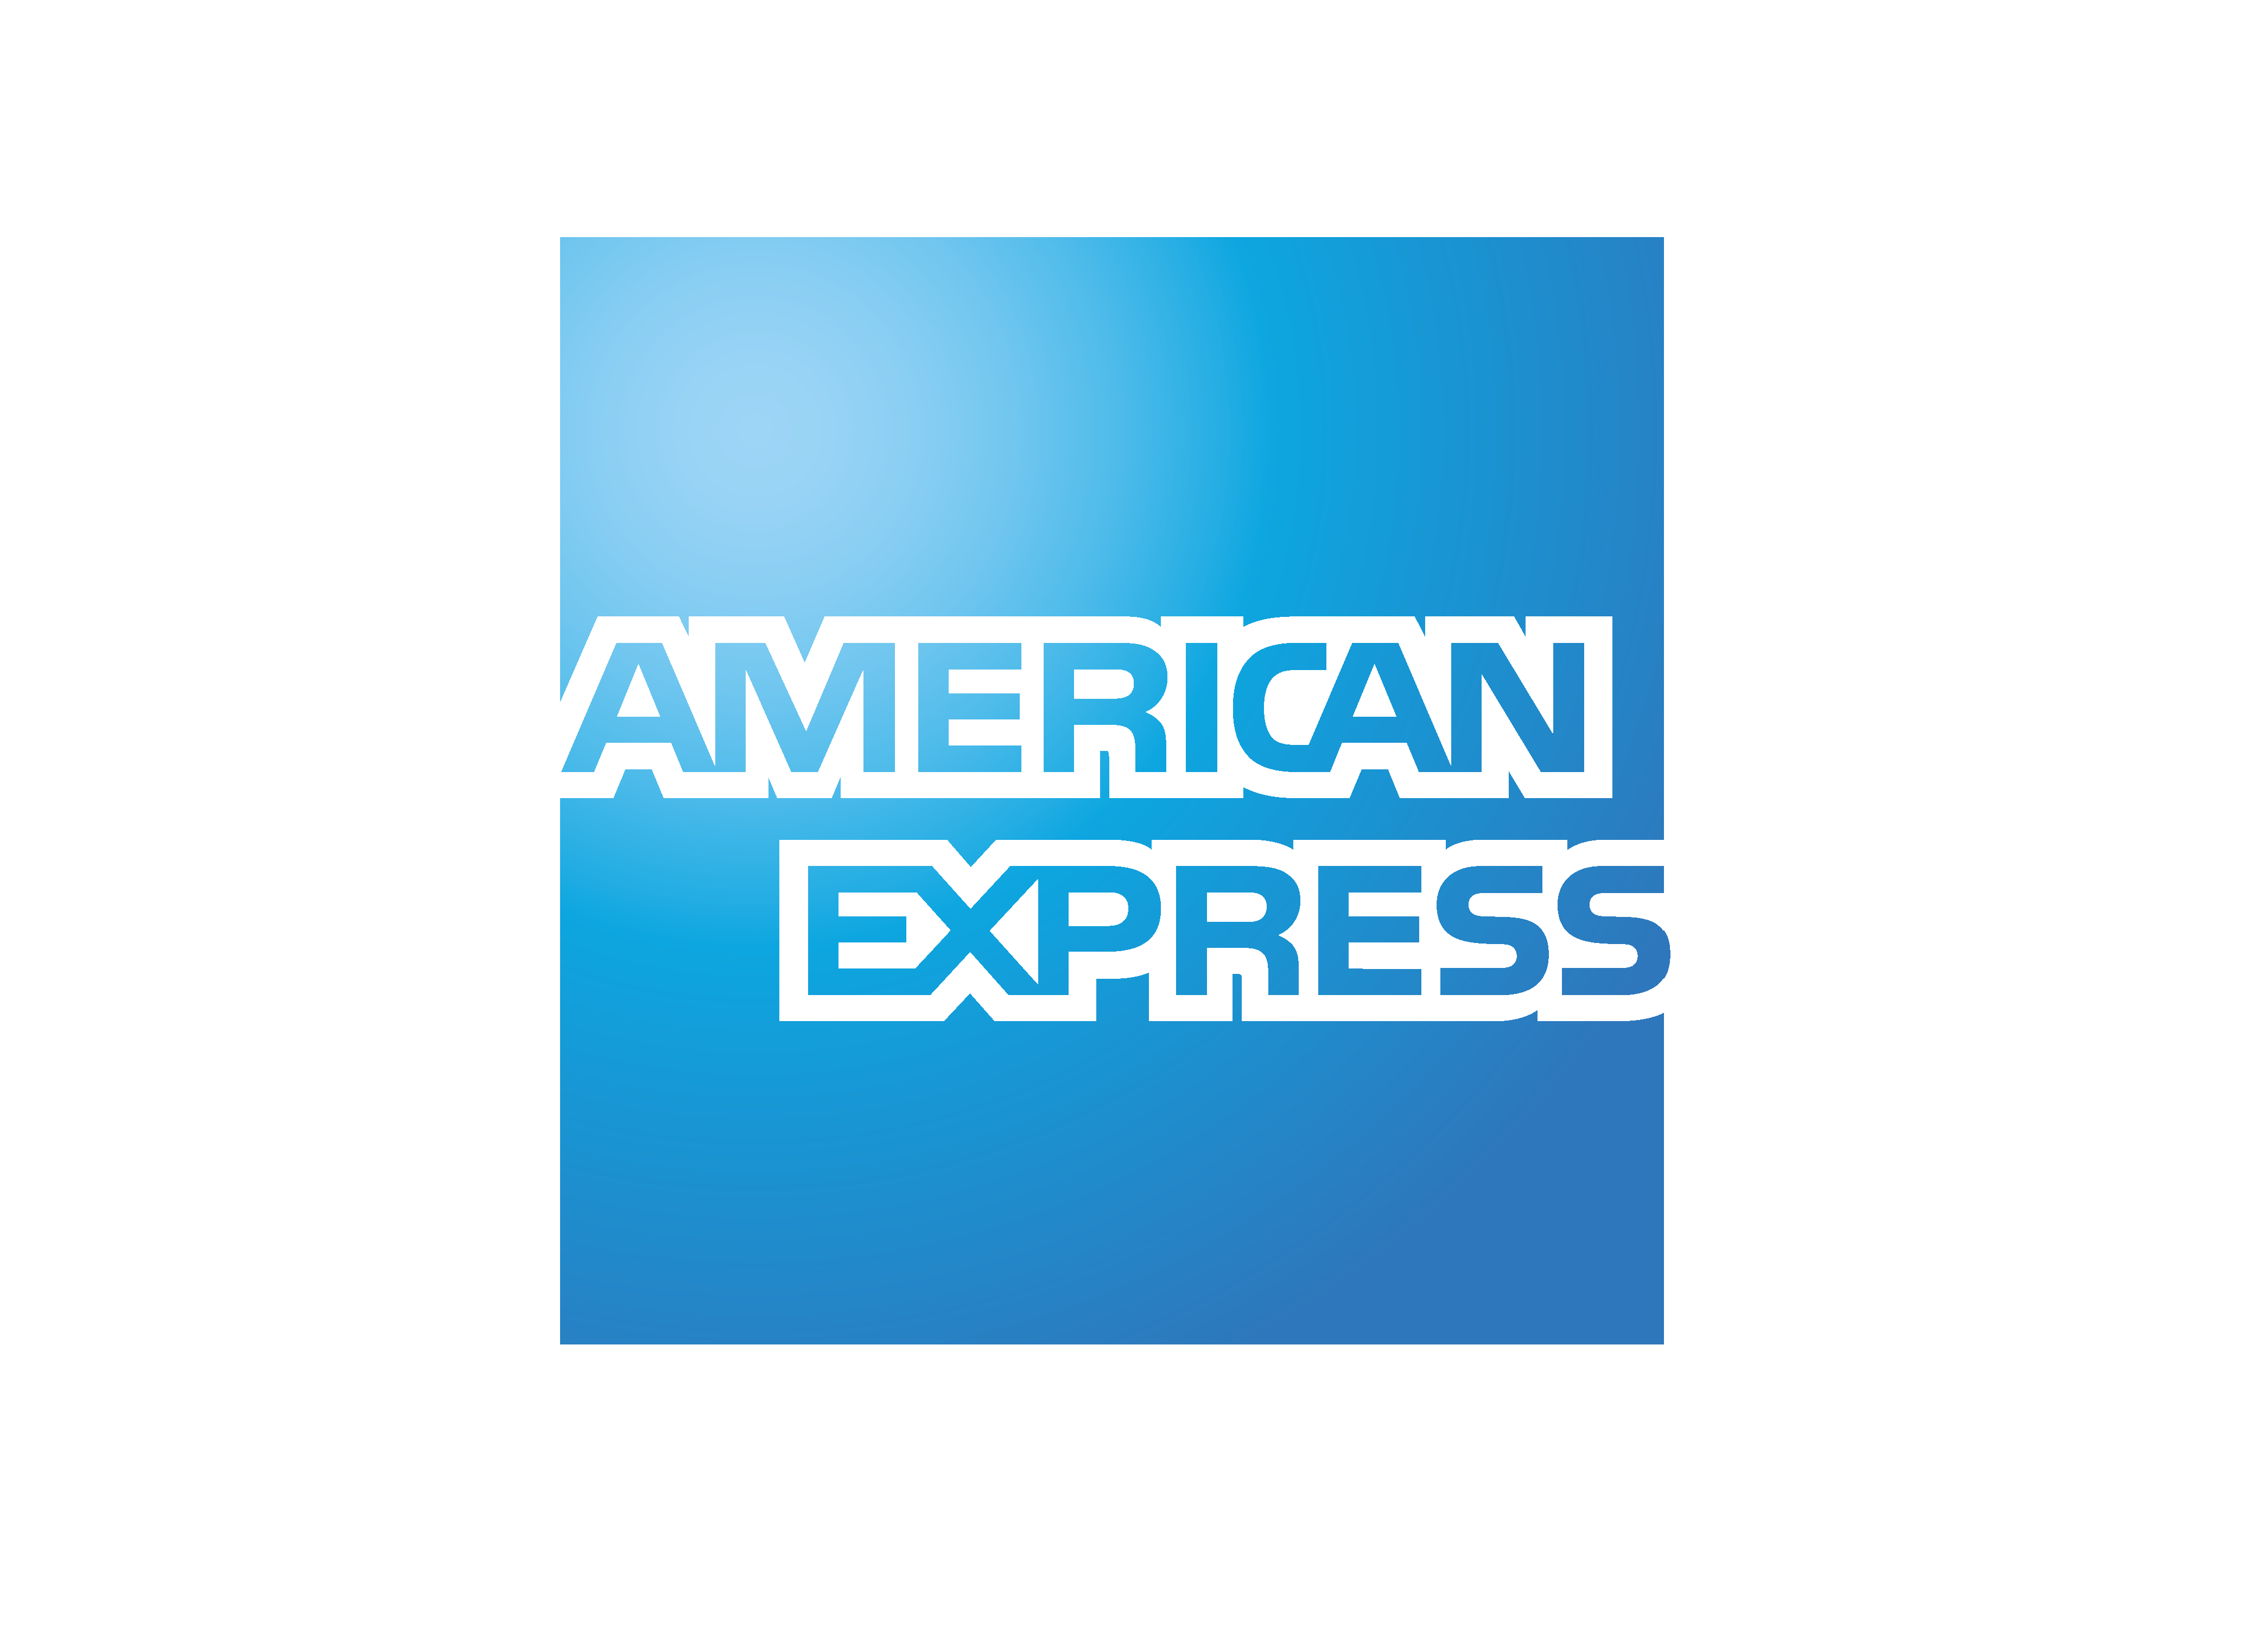 12- American Expess